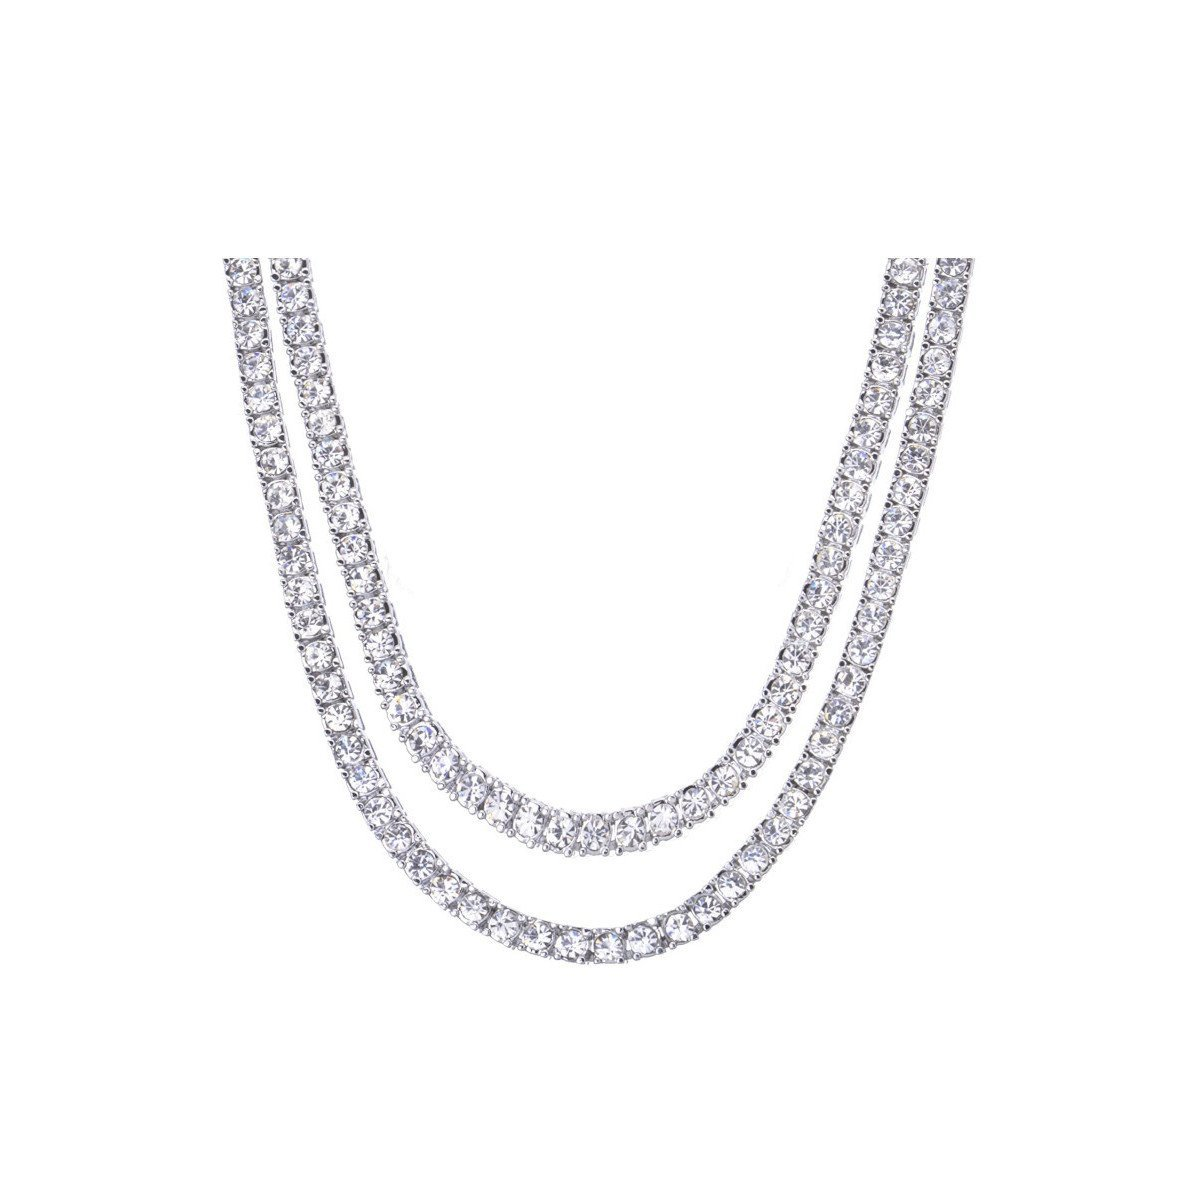 Double Tennis Chain – Silver Toned Iced-Out CZ